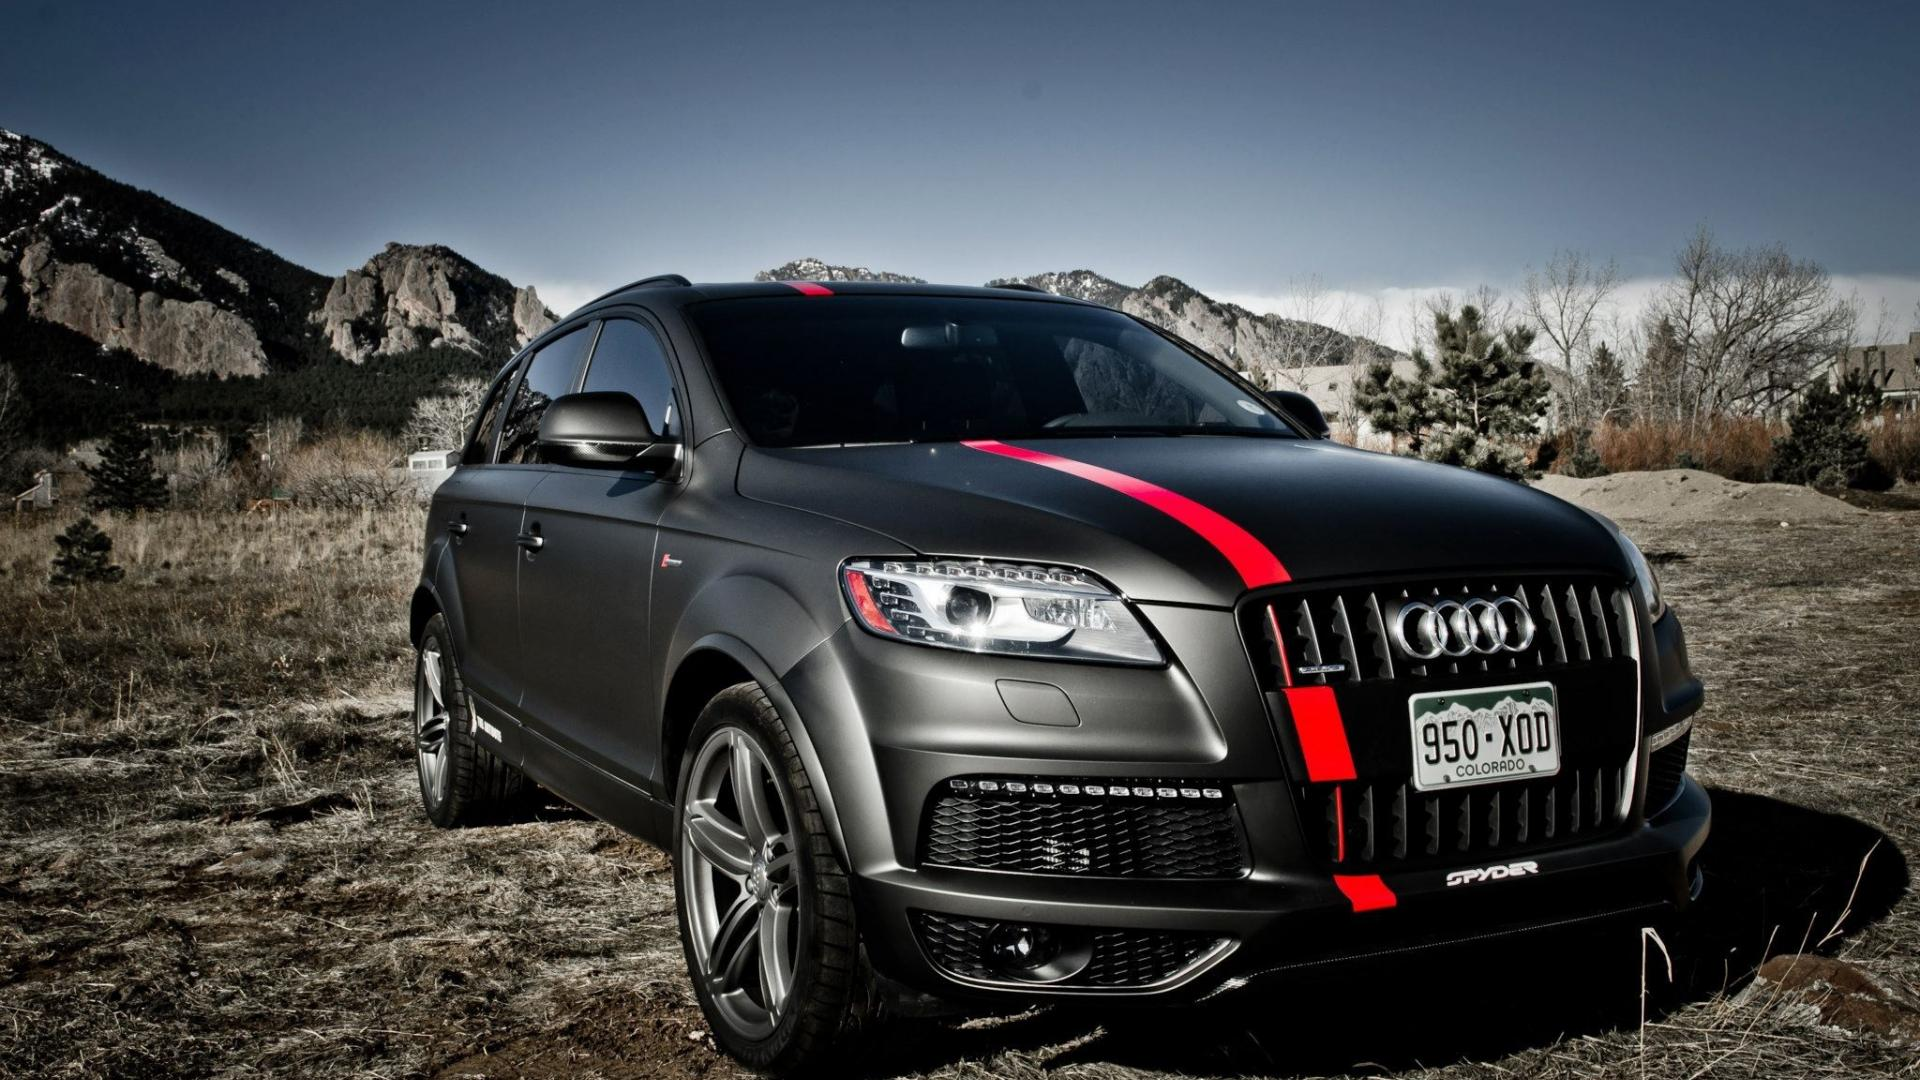 Supercars audi q7 suv german cars wallpapers